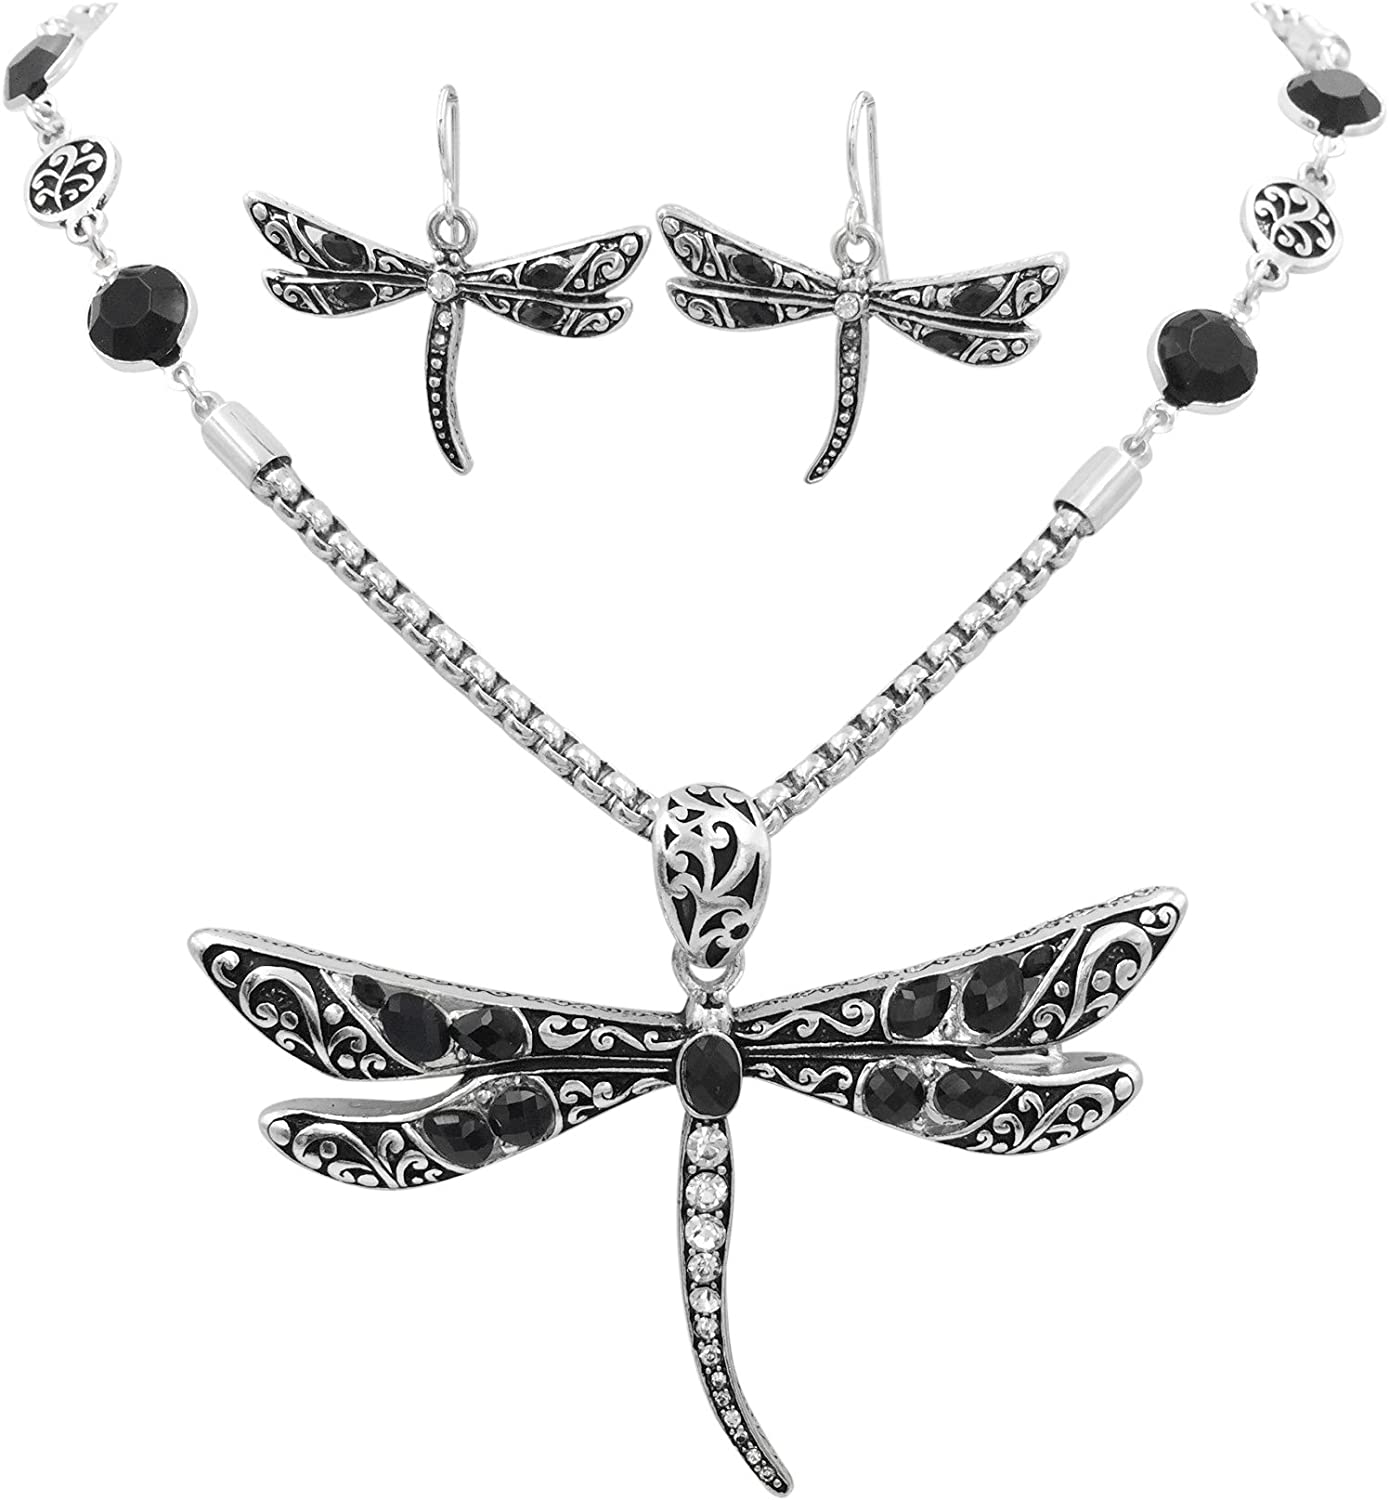 Gypsy Jewels Large Animal Nature Theme Silver Tone Statement Necklace & Earring Set